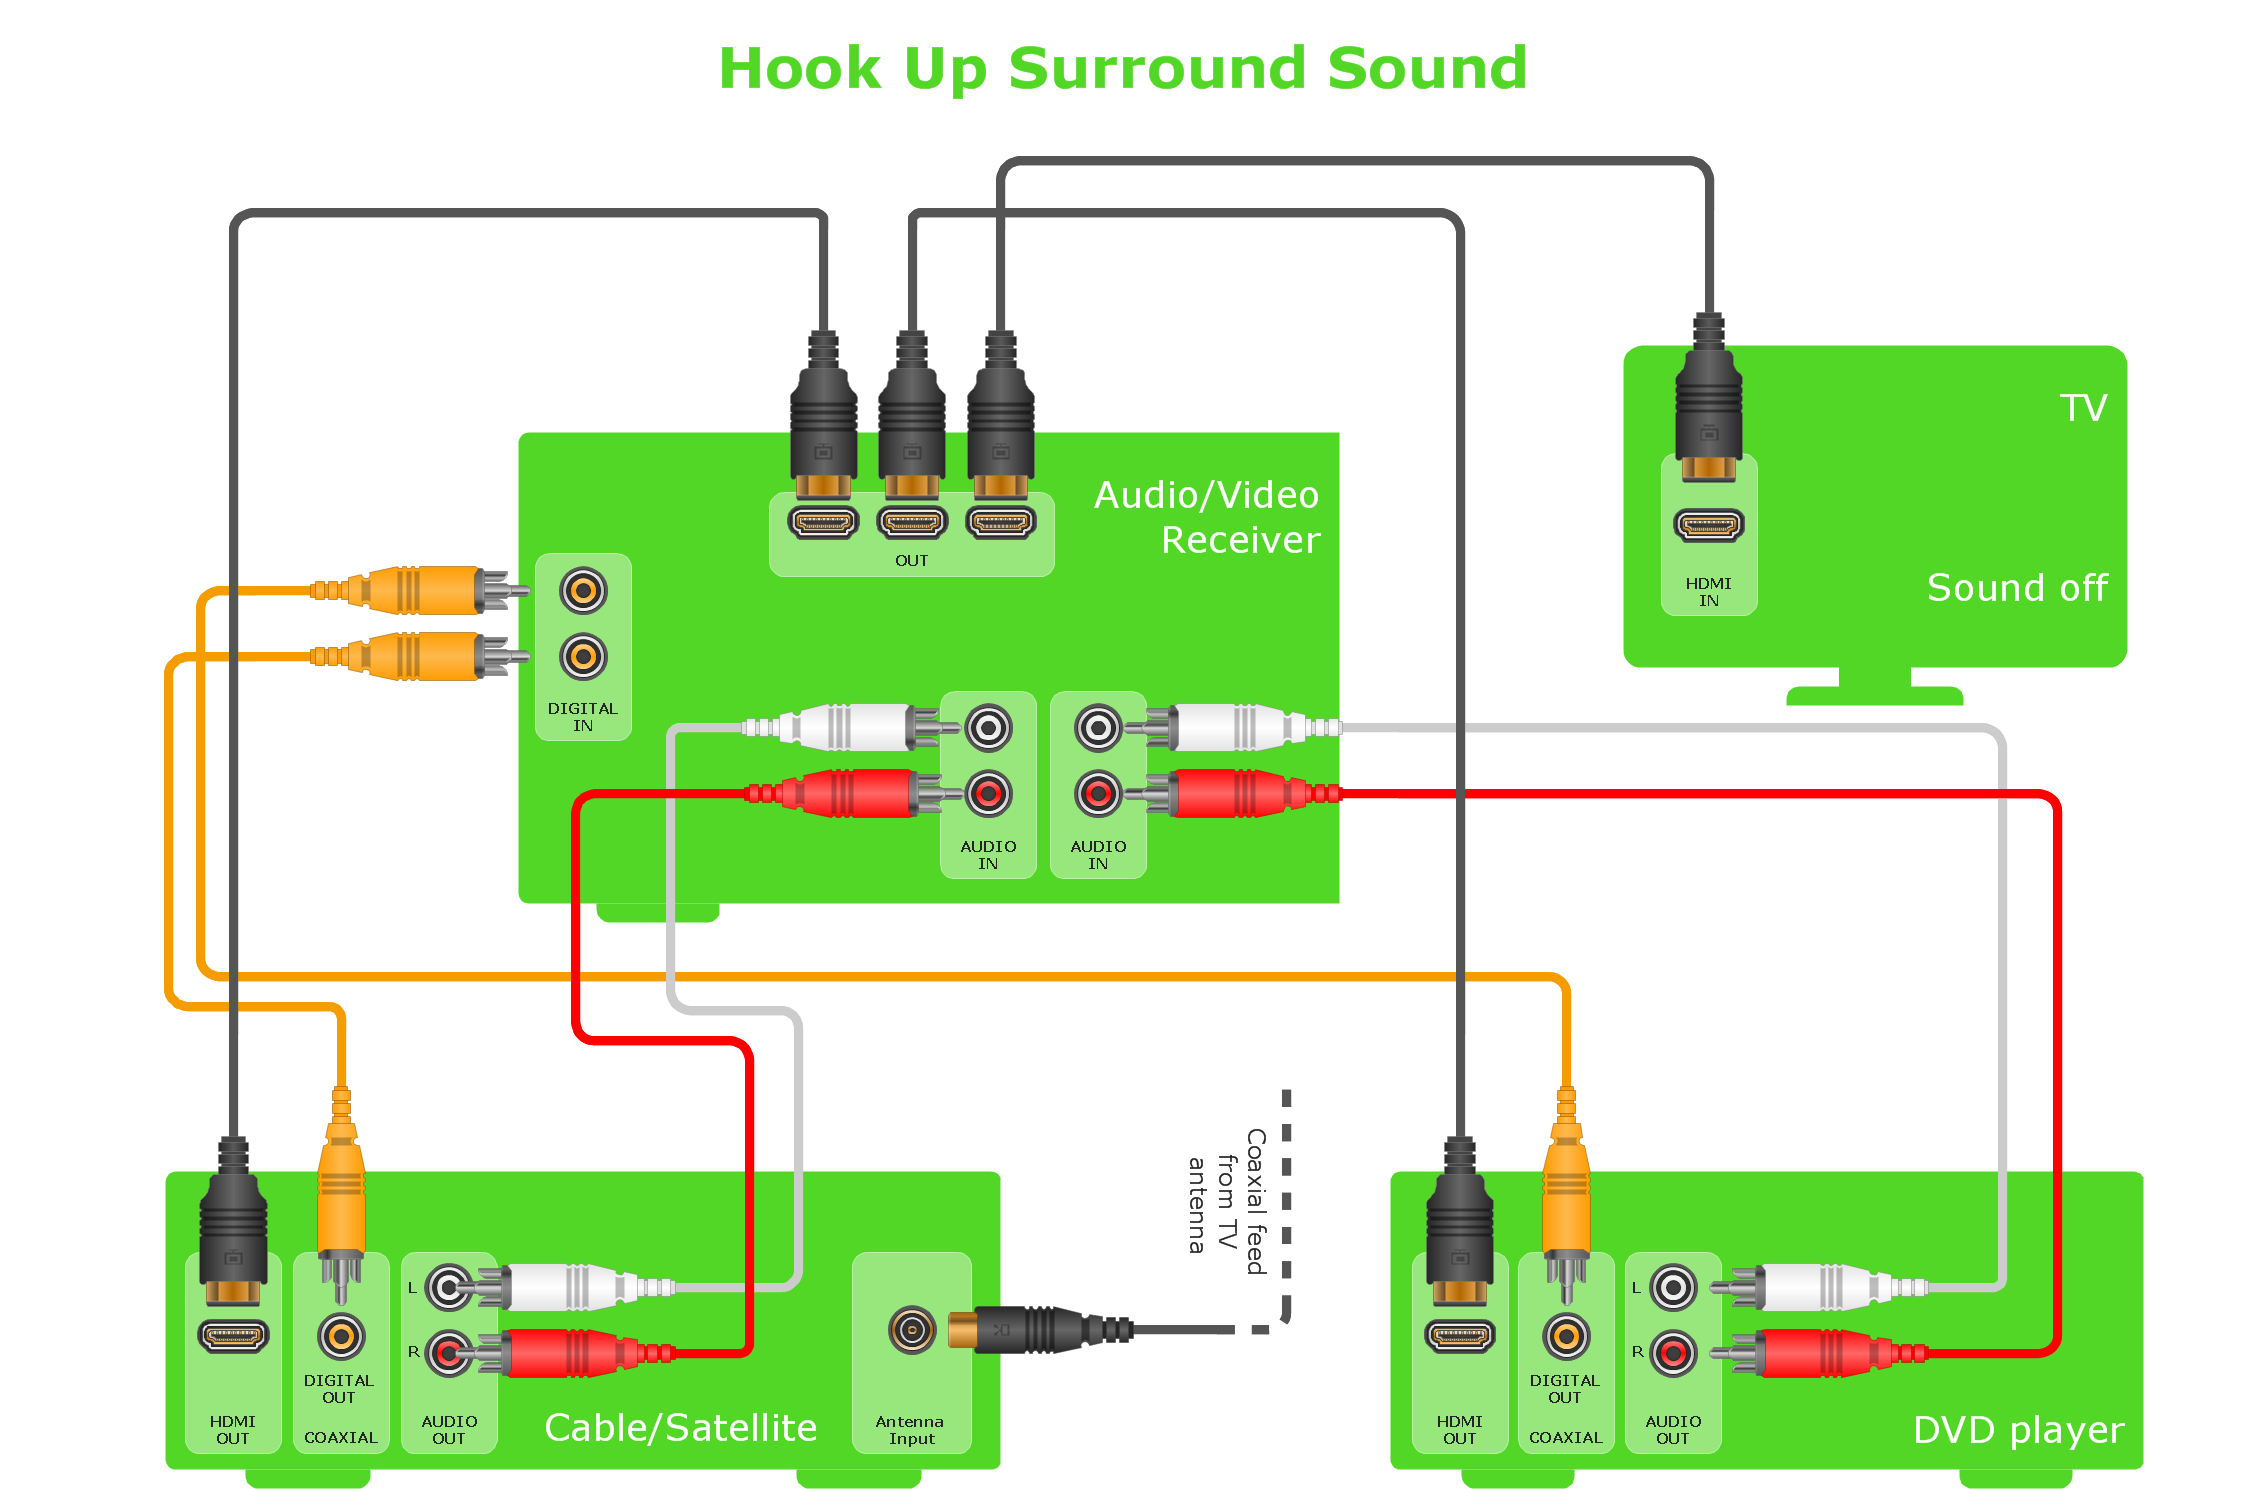 Home Schematic Wiring Diagram How To Make Audio And Video Connections Libraries Templates Hookup Entertainment System With Surround Sound